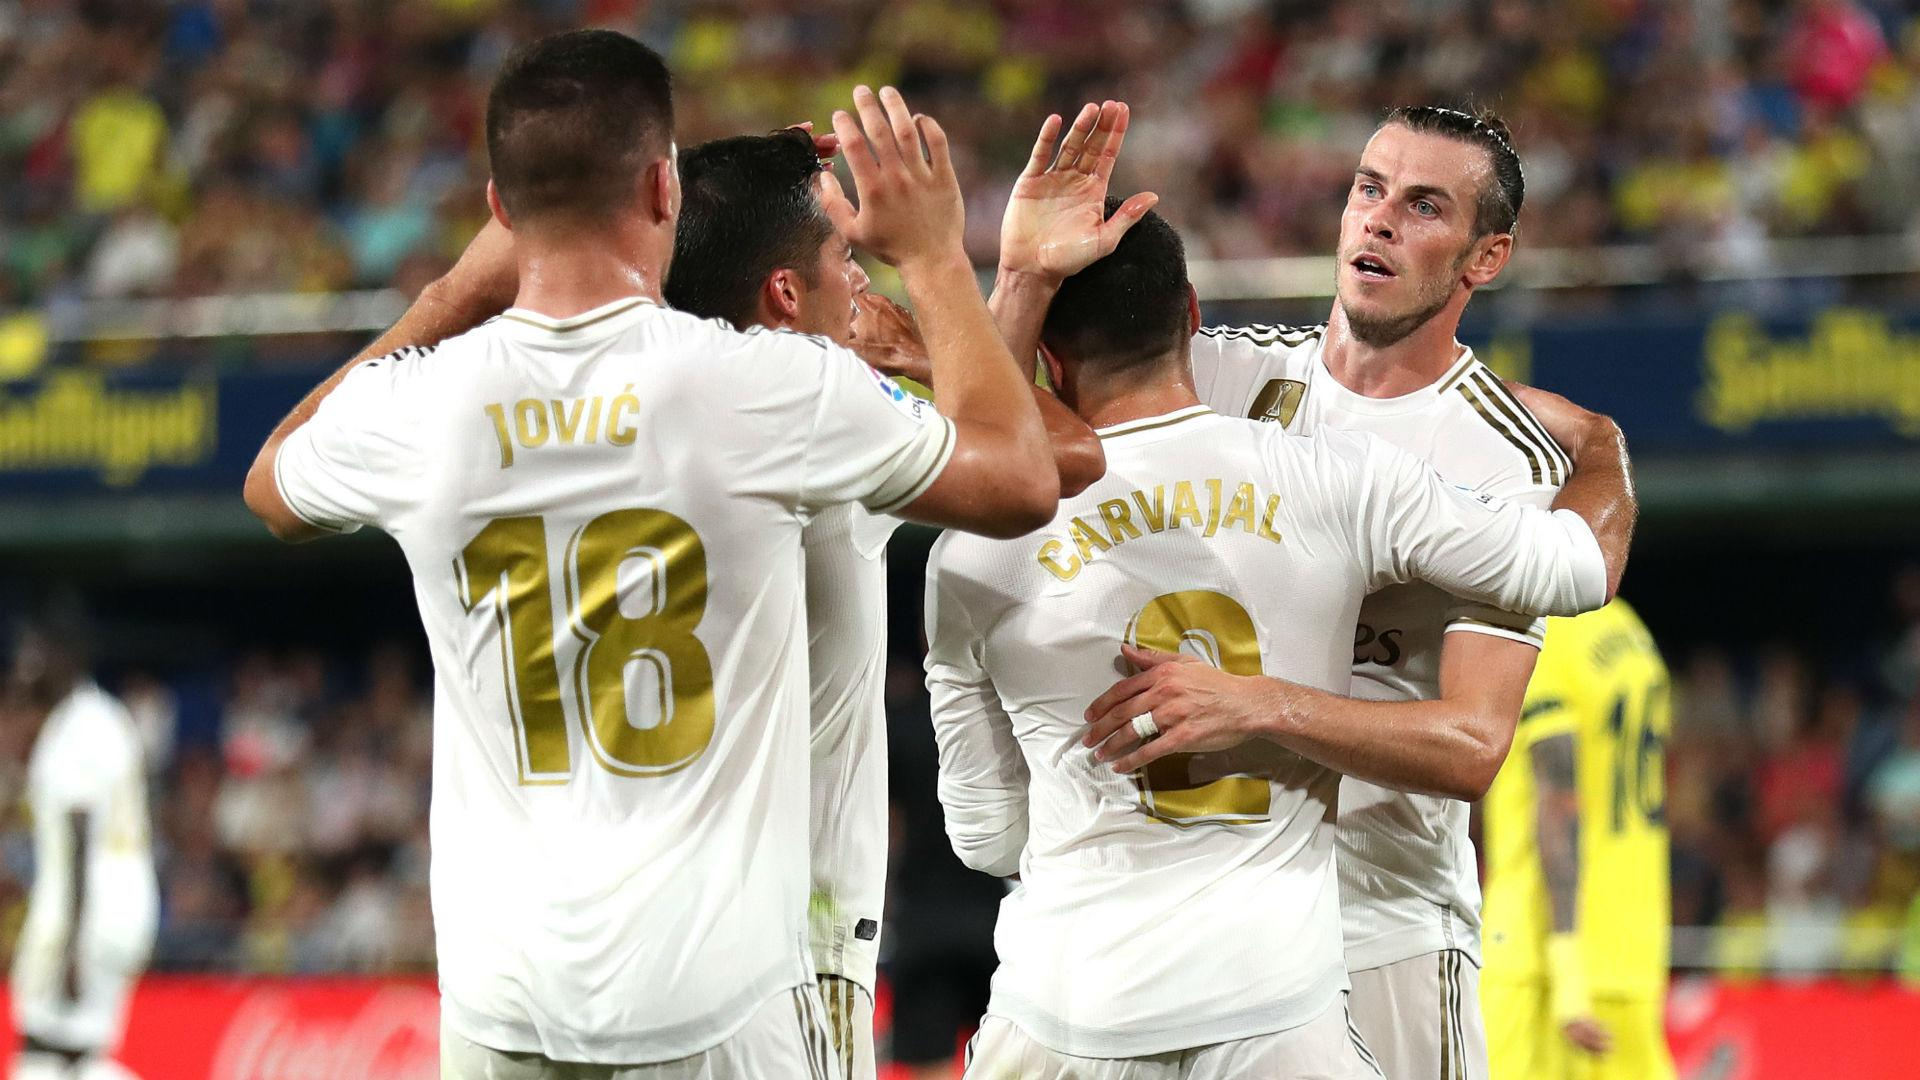 Florentino Perez feels Real Madrid's appetite for success lessened last season and he has demanded a return to the top.